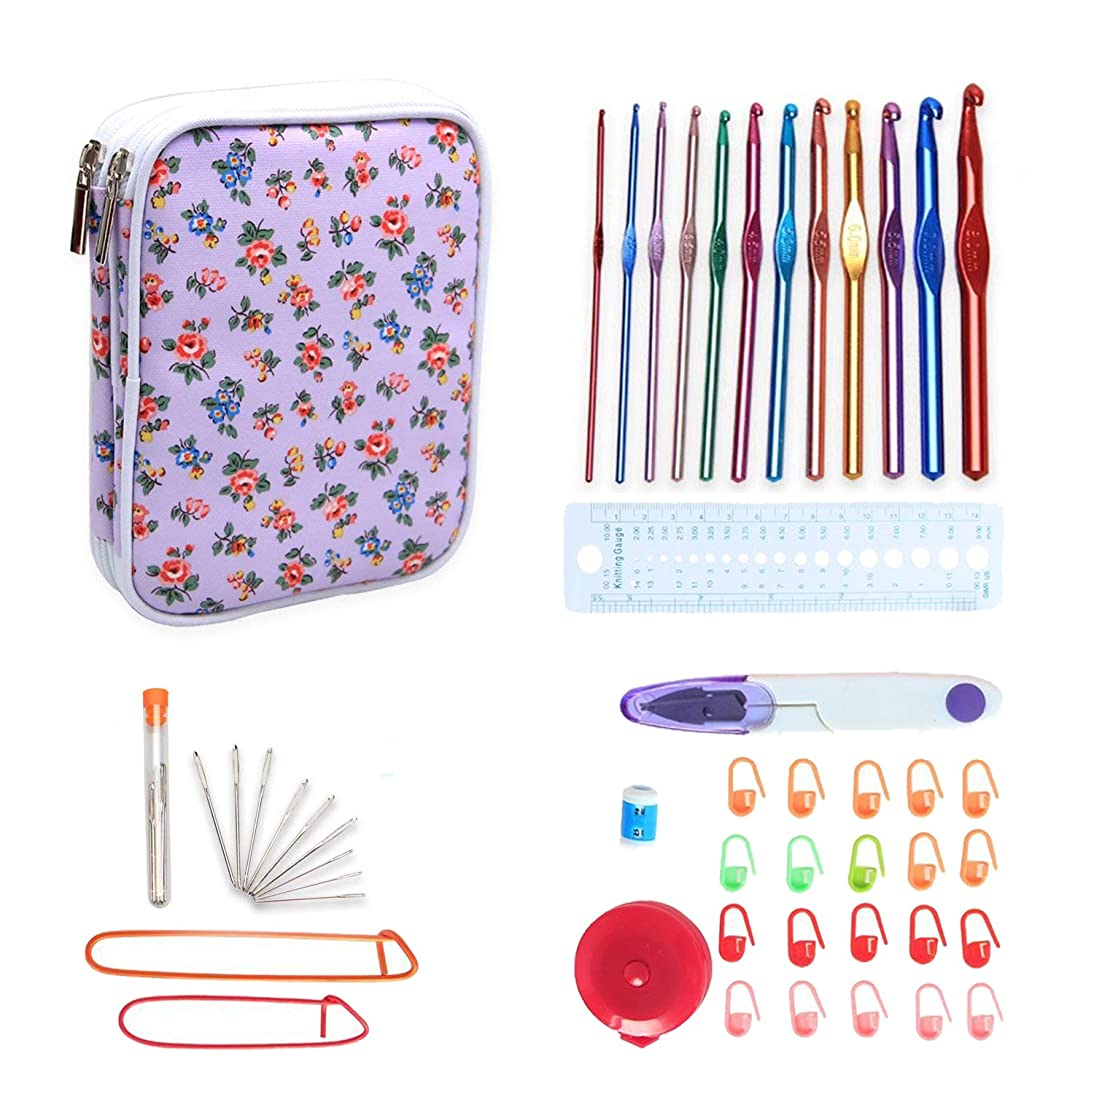 Teamoy Aluminum Crochet Hooks Set, Knitting Needle Kit, Organizer Carrying Case with 12pcs 2mm to 8mm Hooks and Complete Accessories, All in One Place and Easy to Carry, Purple Flowers